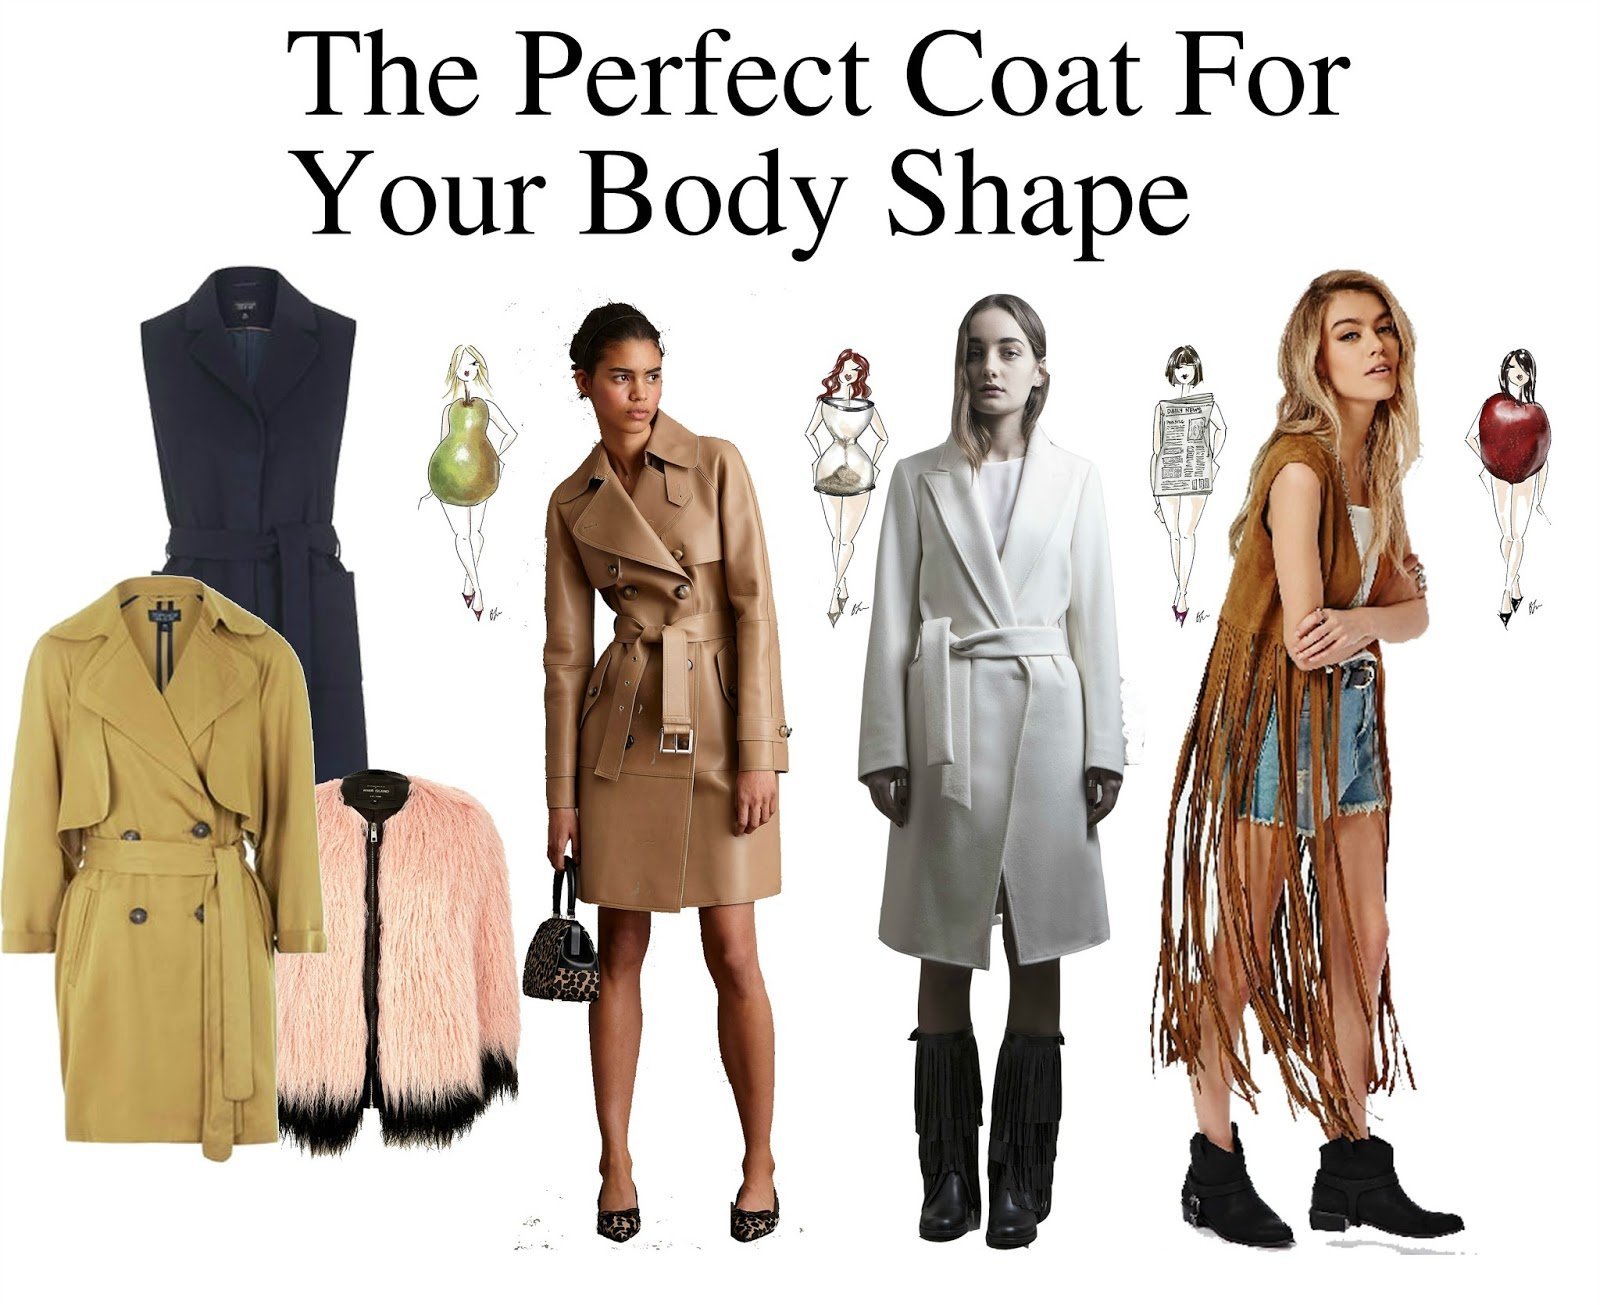 The Perfect Coat For Your Body Shape